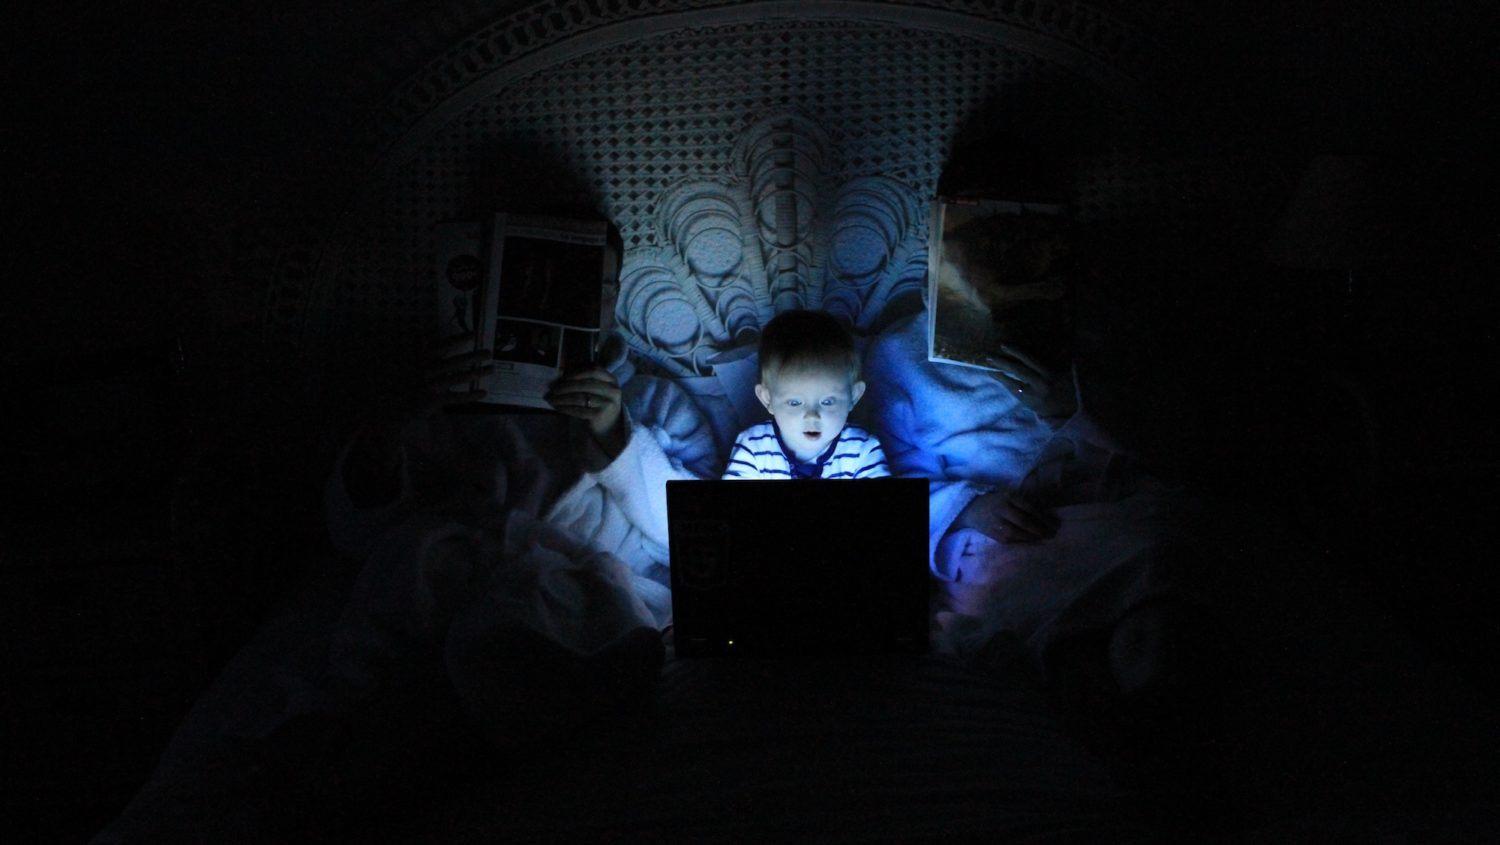 young boy in bed looking at laptop in the dark